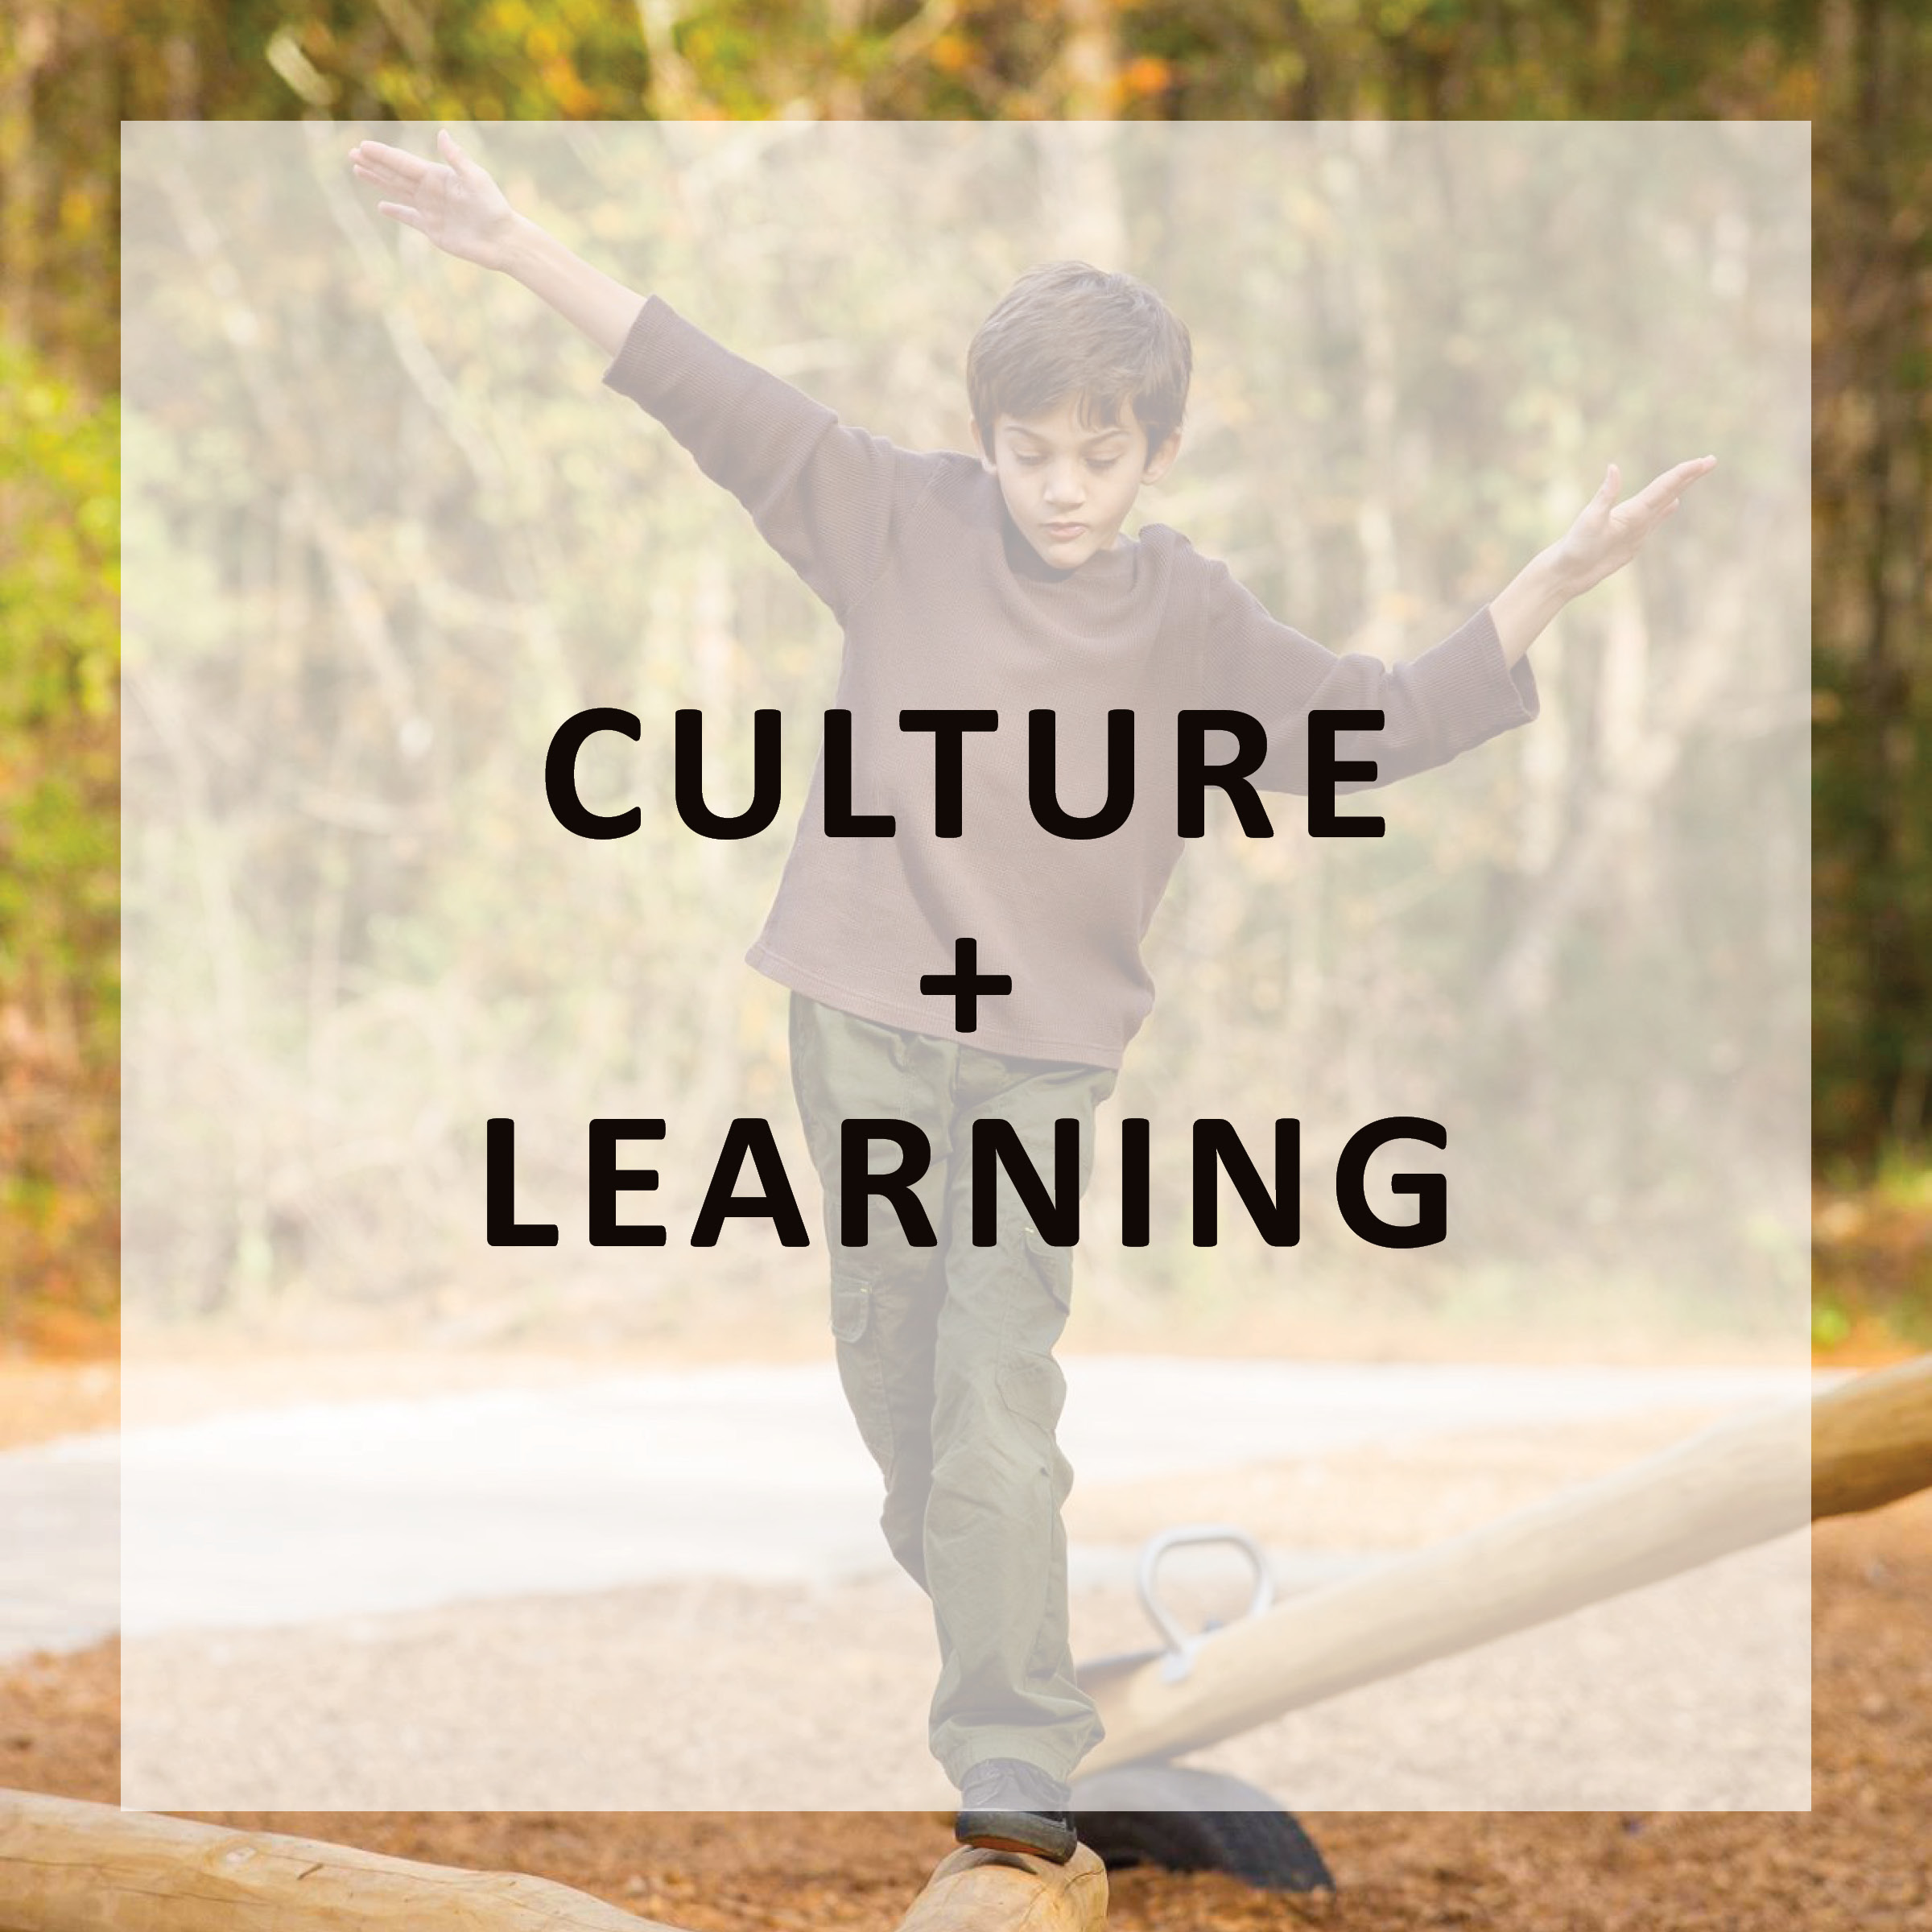 CULTURE + LEARNING